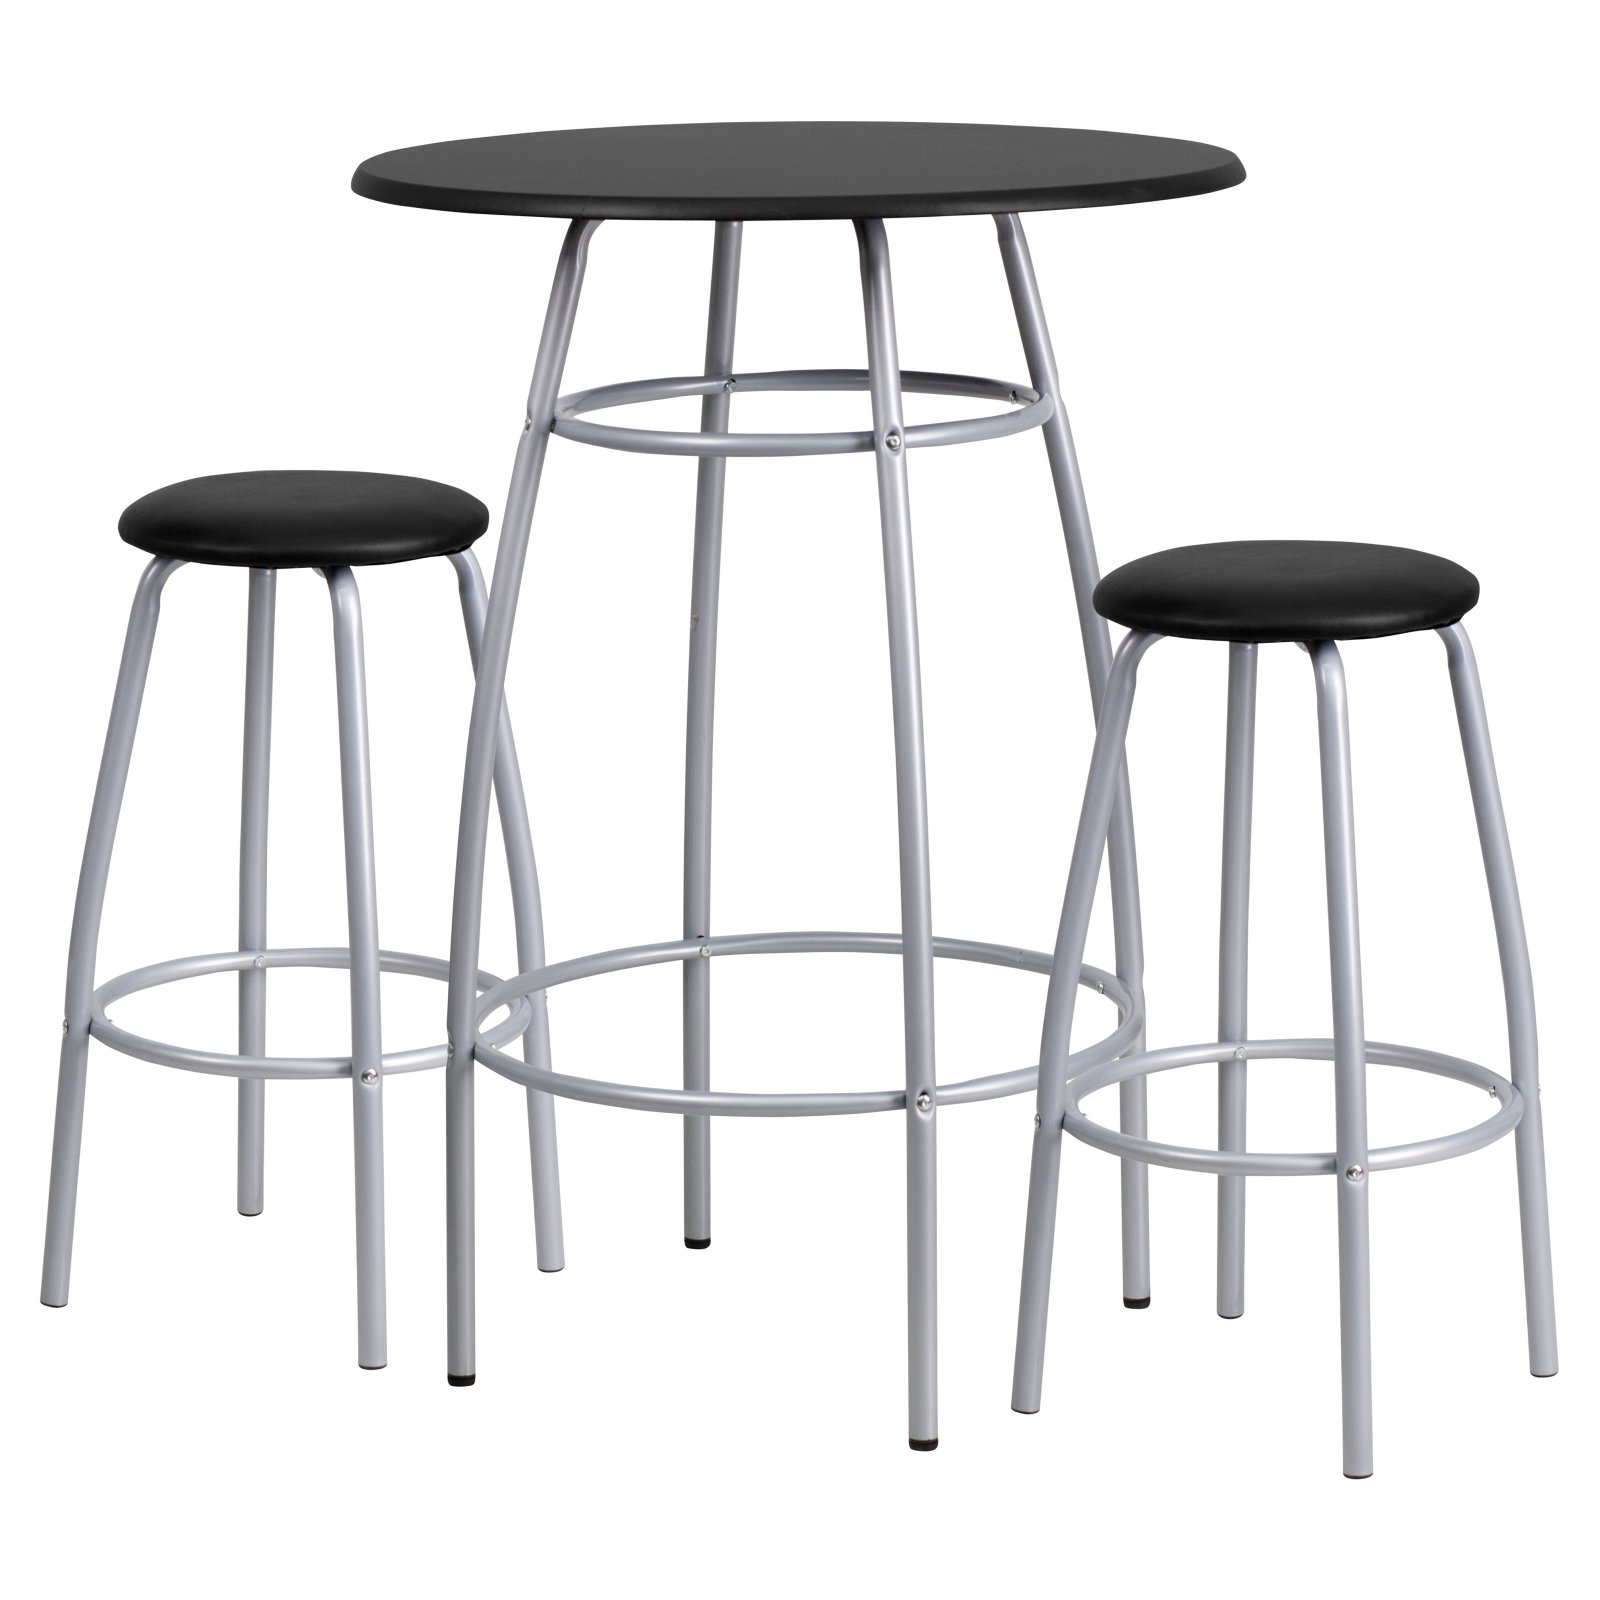 Superior Flash Furniture Bar Height Table And Stool Set With Bowed Out Legs, Black